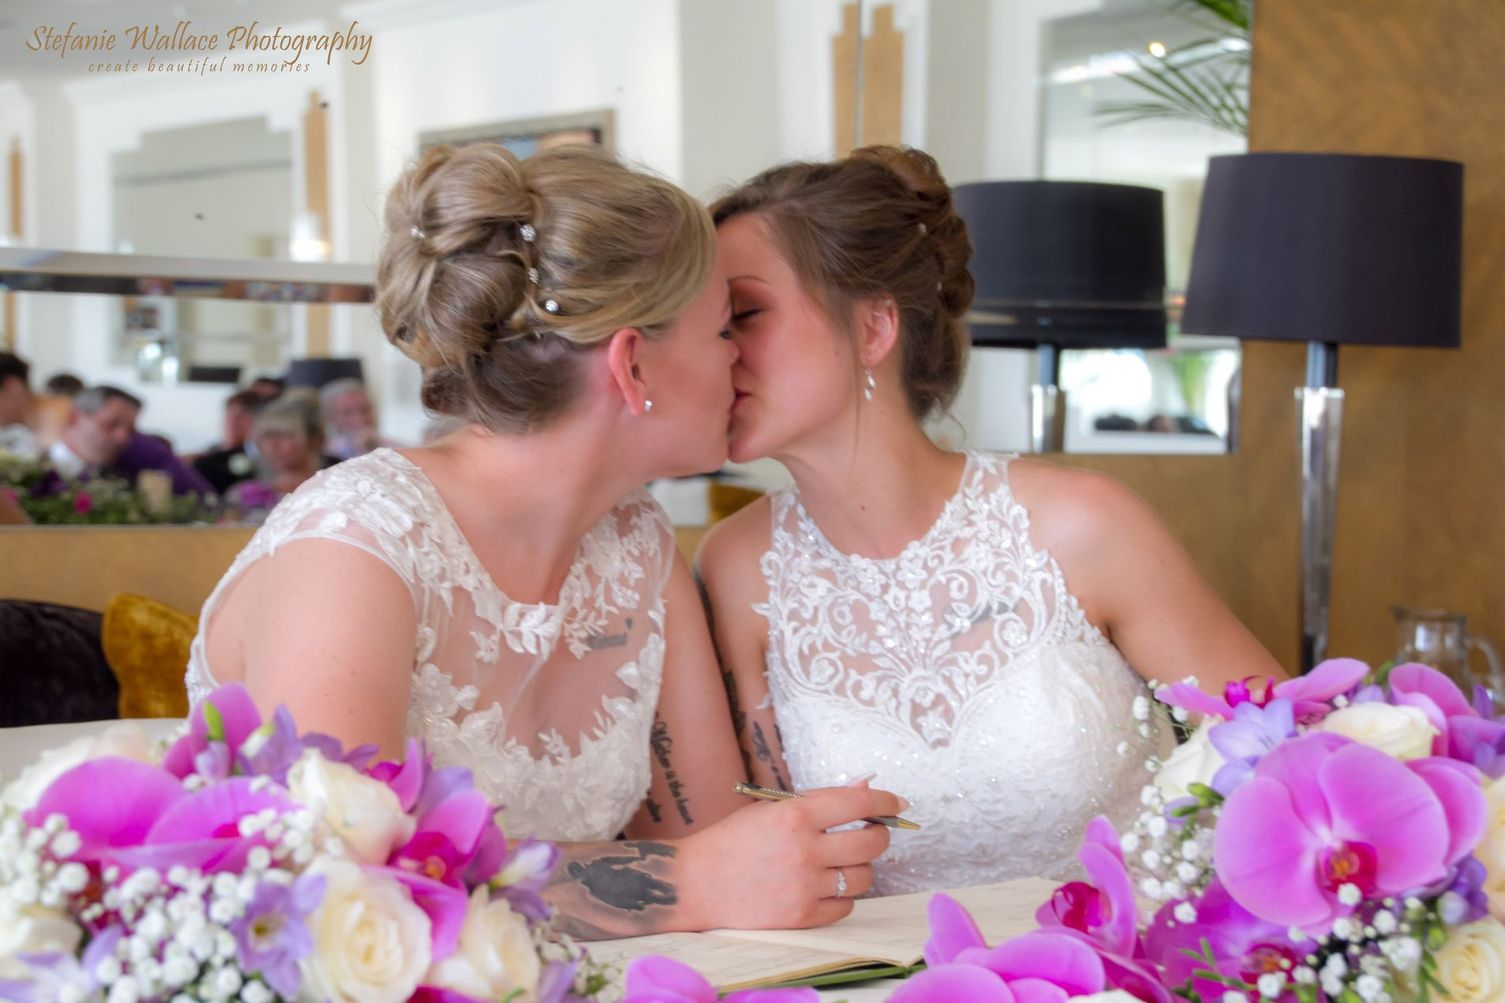 2018 Wedding Couple 42 Stefanie Wallace Photography